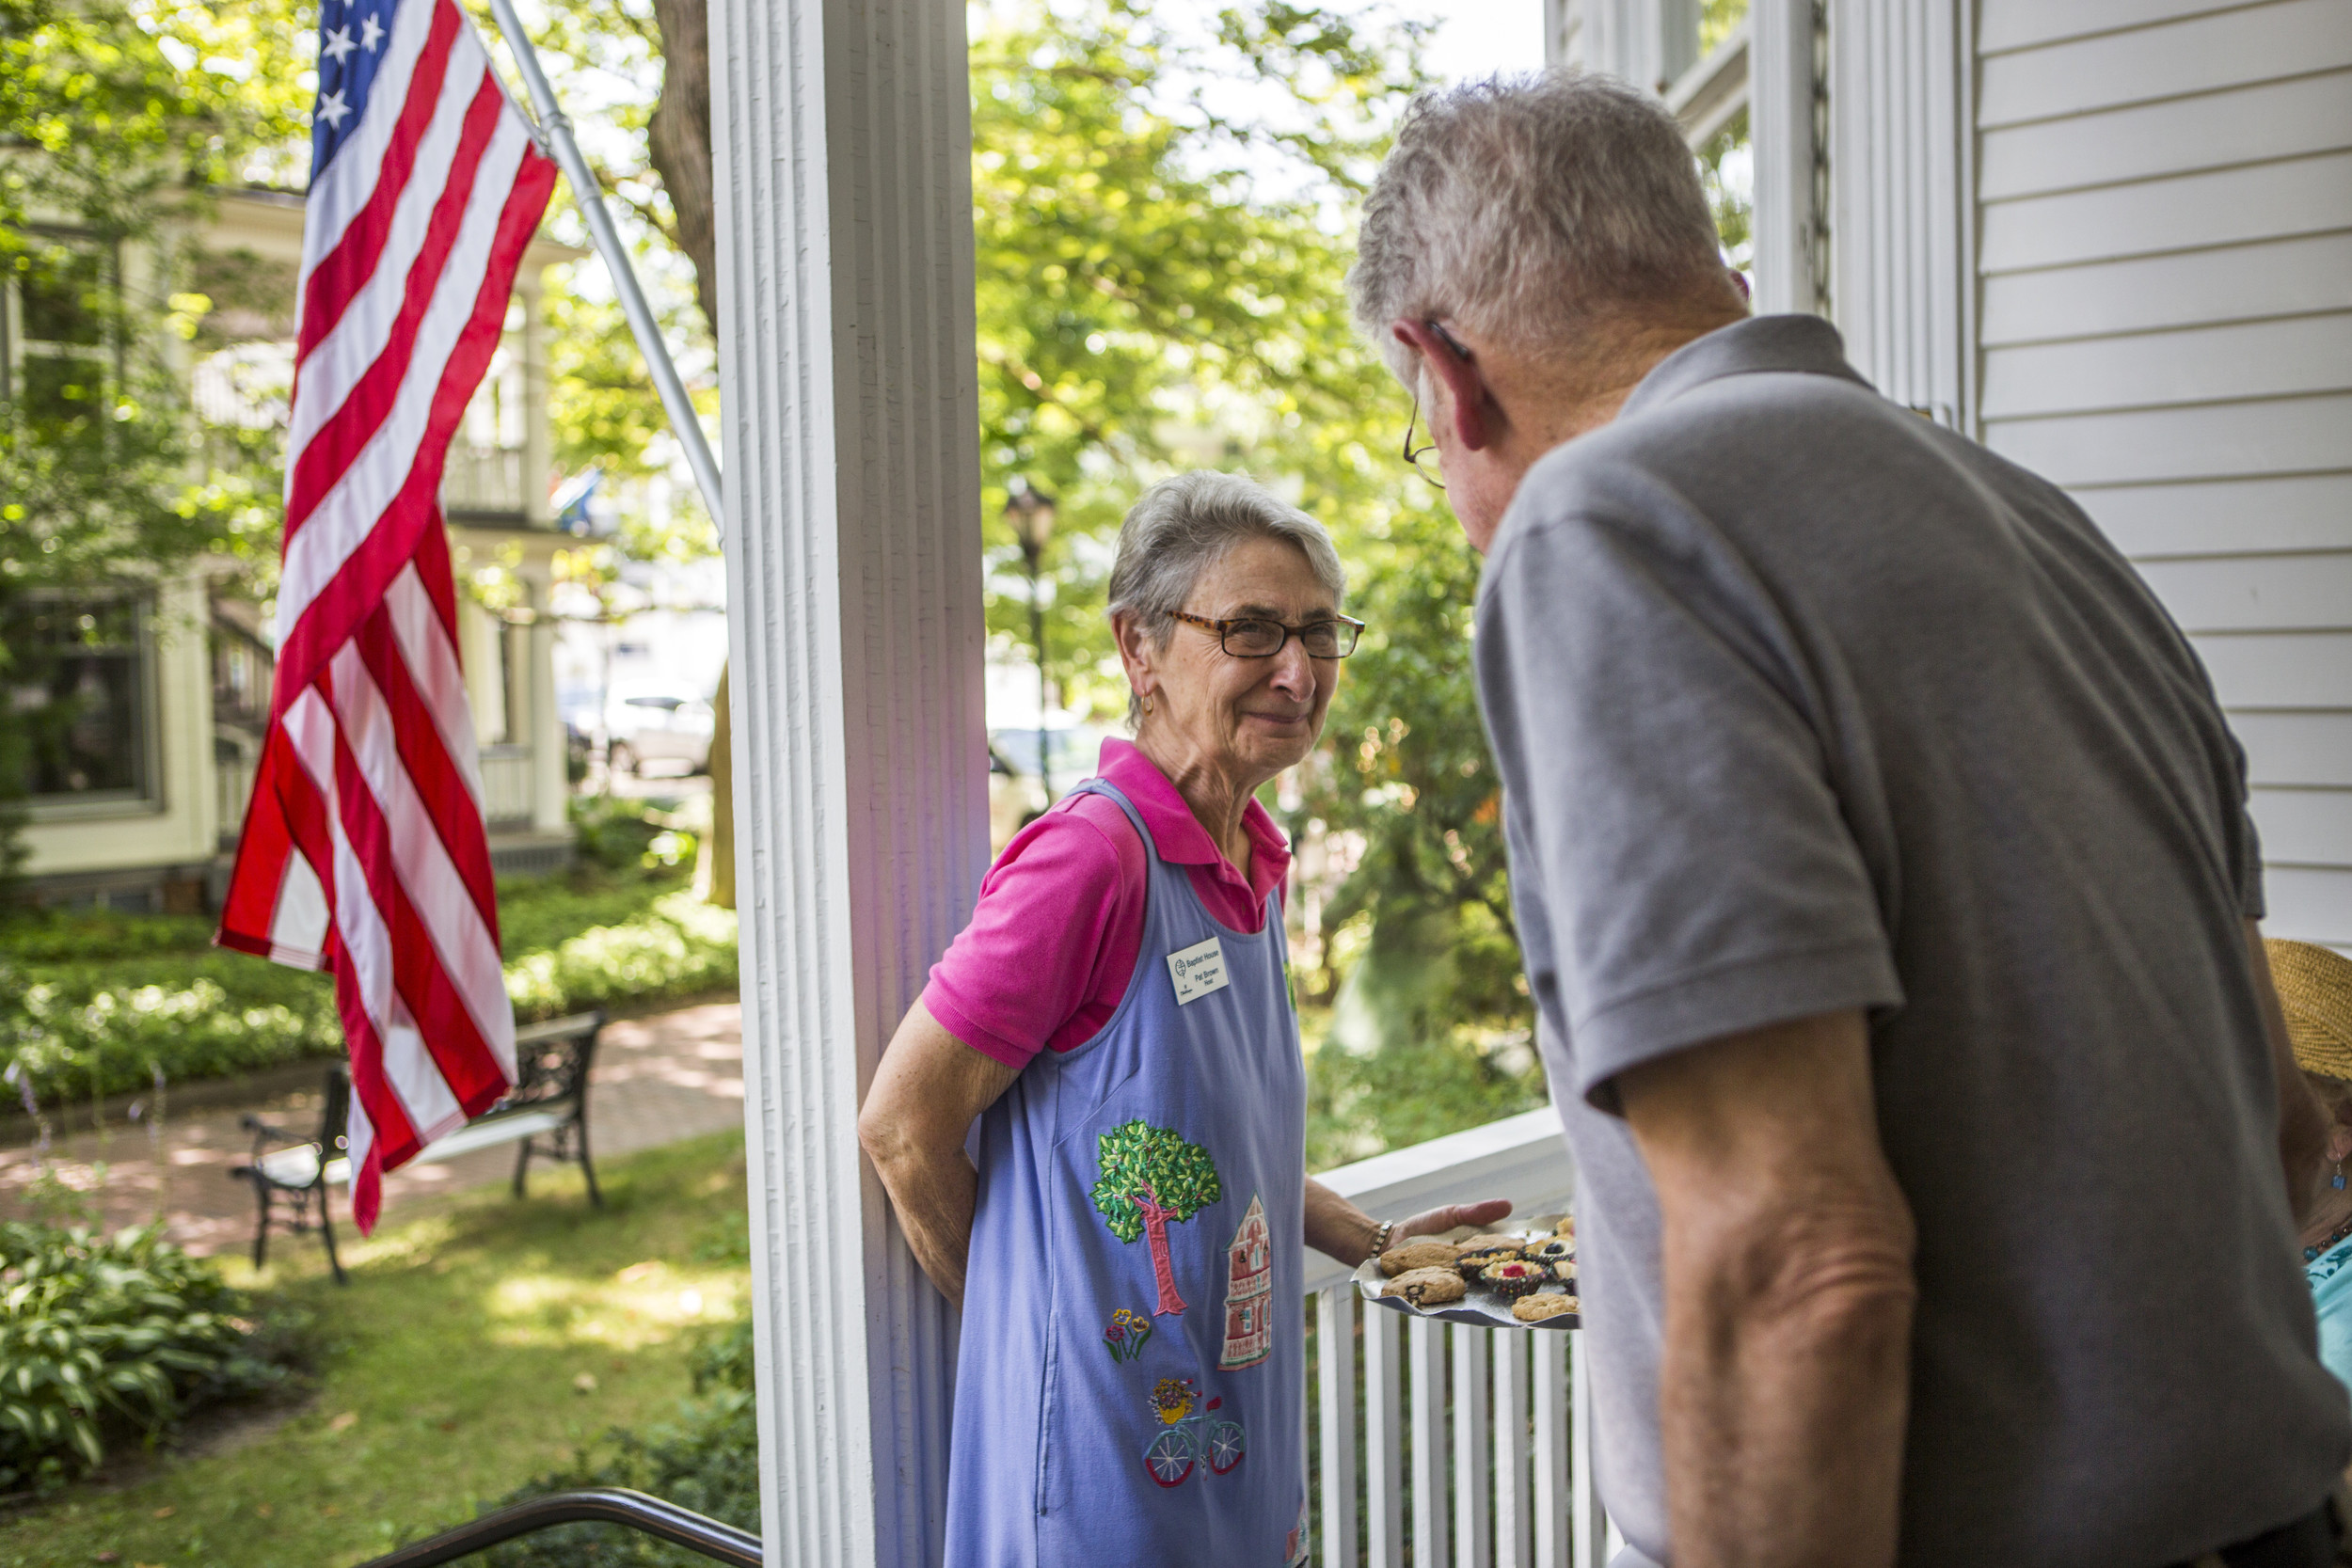 Pat and Bud share a quiet moment on the Baptist front porch during a Tuesday social hour. Bud says that when he first dropped Pat off in Chautauqua she cried because she didn't know anyone, but when Bud came to pick her up she cried because she didn't want to leave. Now Bud and Pat play important roles in the Chautauquan community.